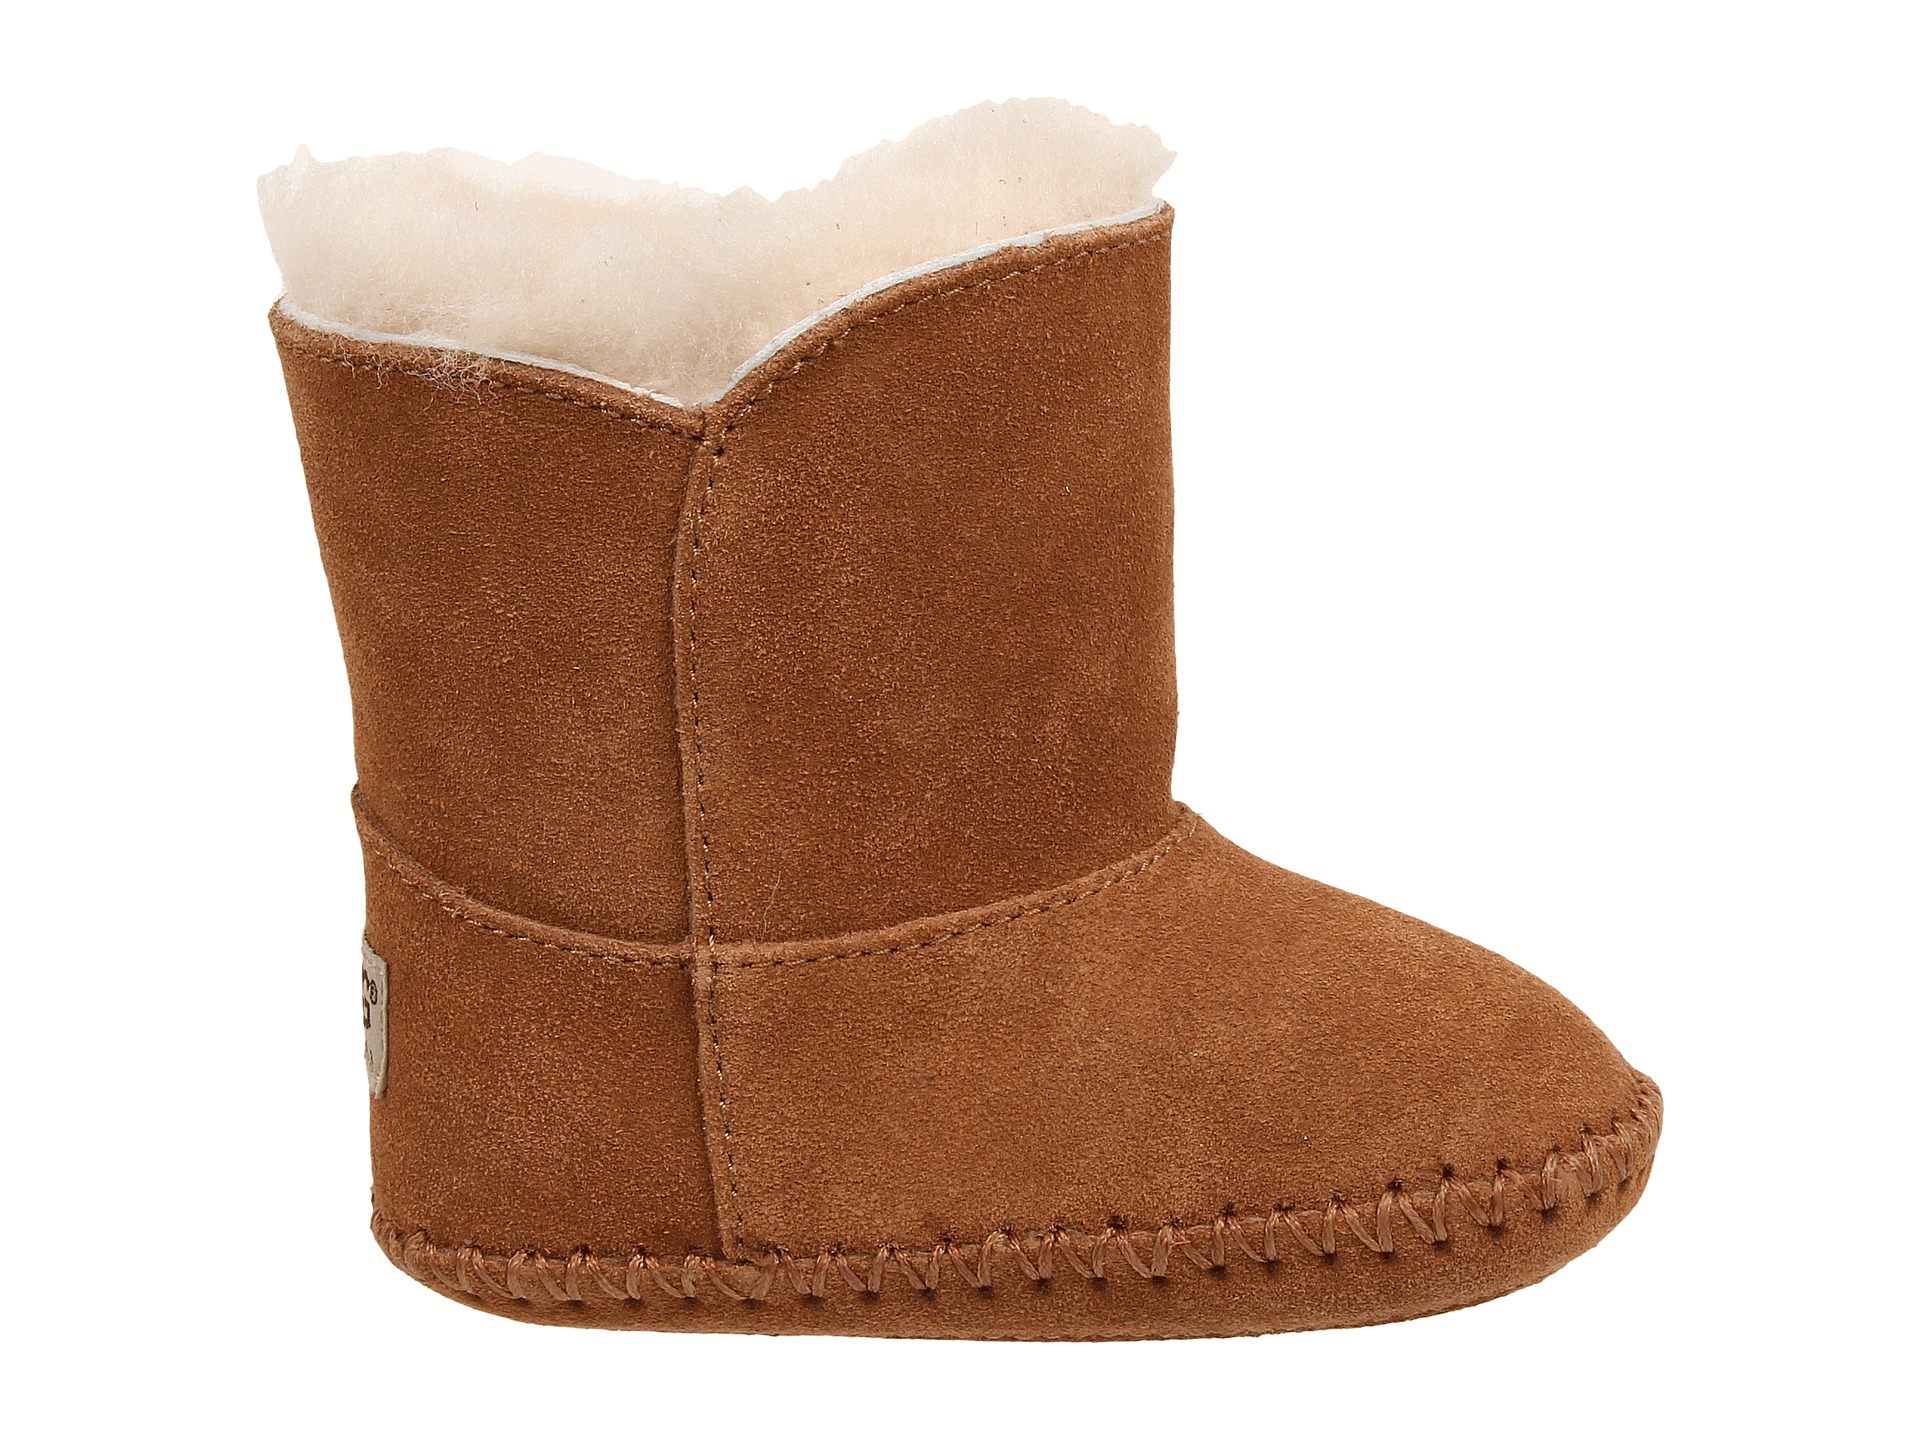 Find baby uggs on sale at Macy's Macy's Presents: The Edit - A curated mix of fashion and inspiration Check It Out Free Shipping with $49 purchase + Free Store Pickup.